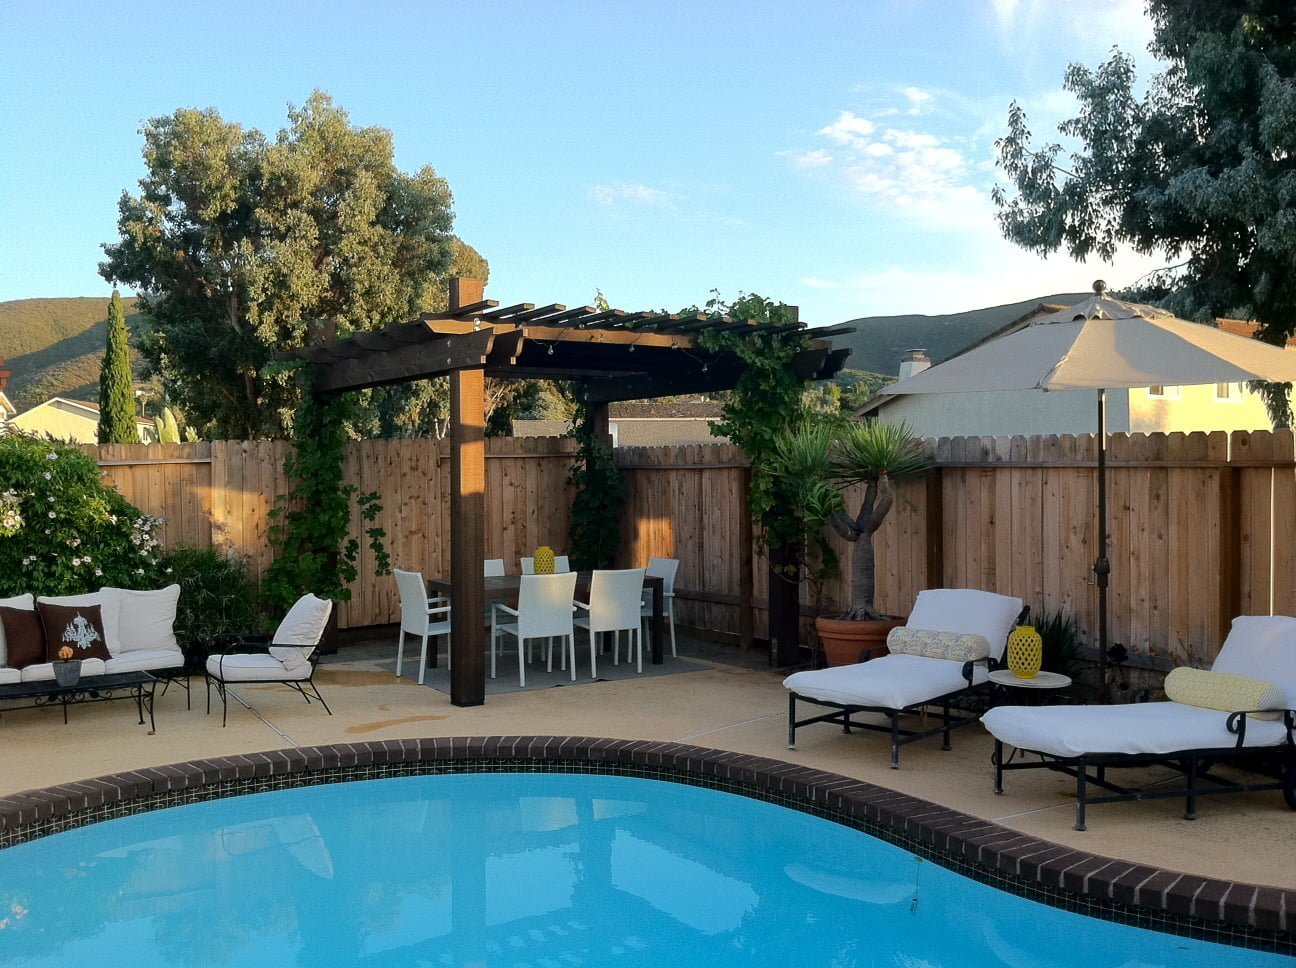 The Real Budget-friendly Backyard Makeover with Tips and ... on Diy Backyard Remodel id=50813